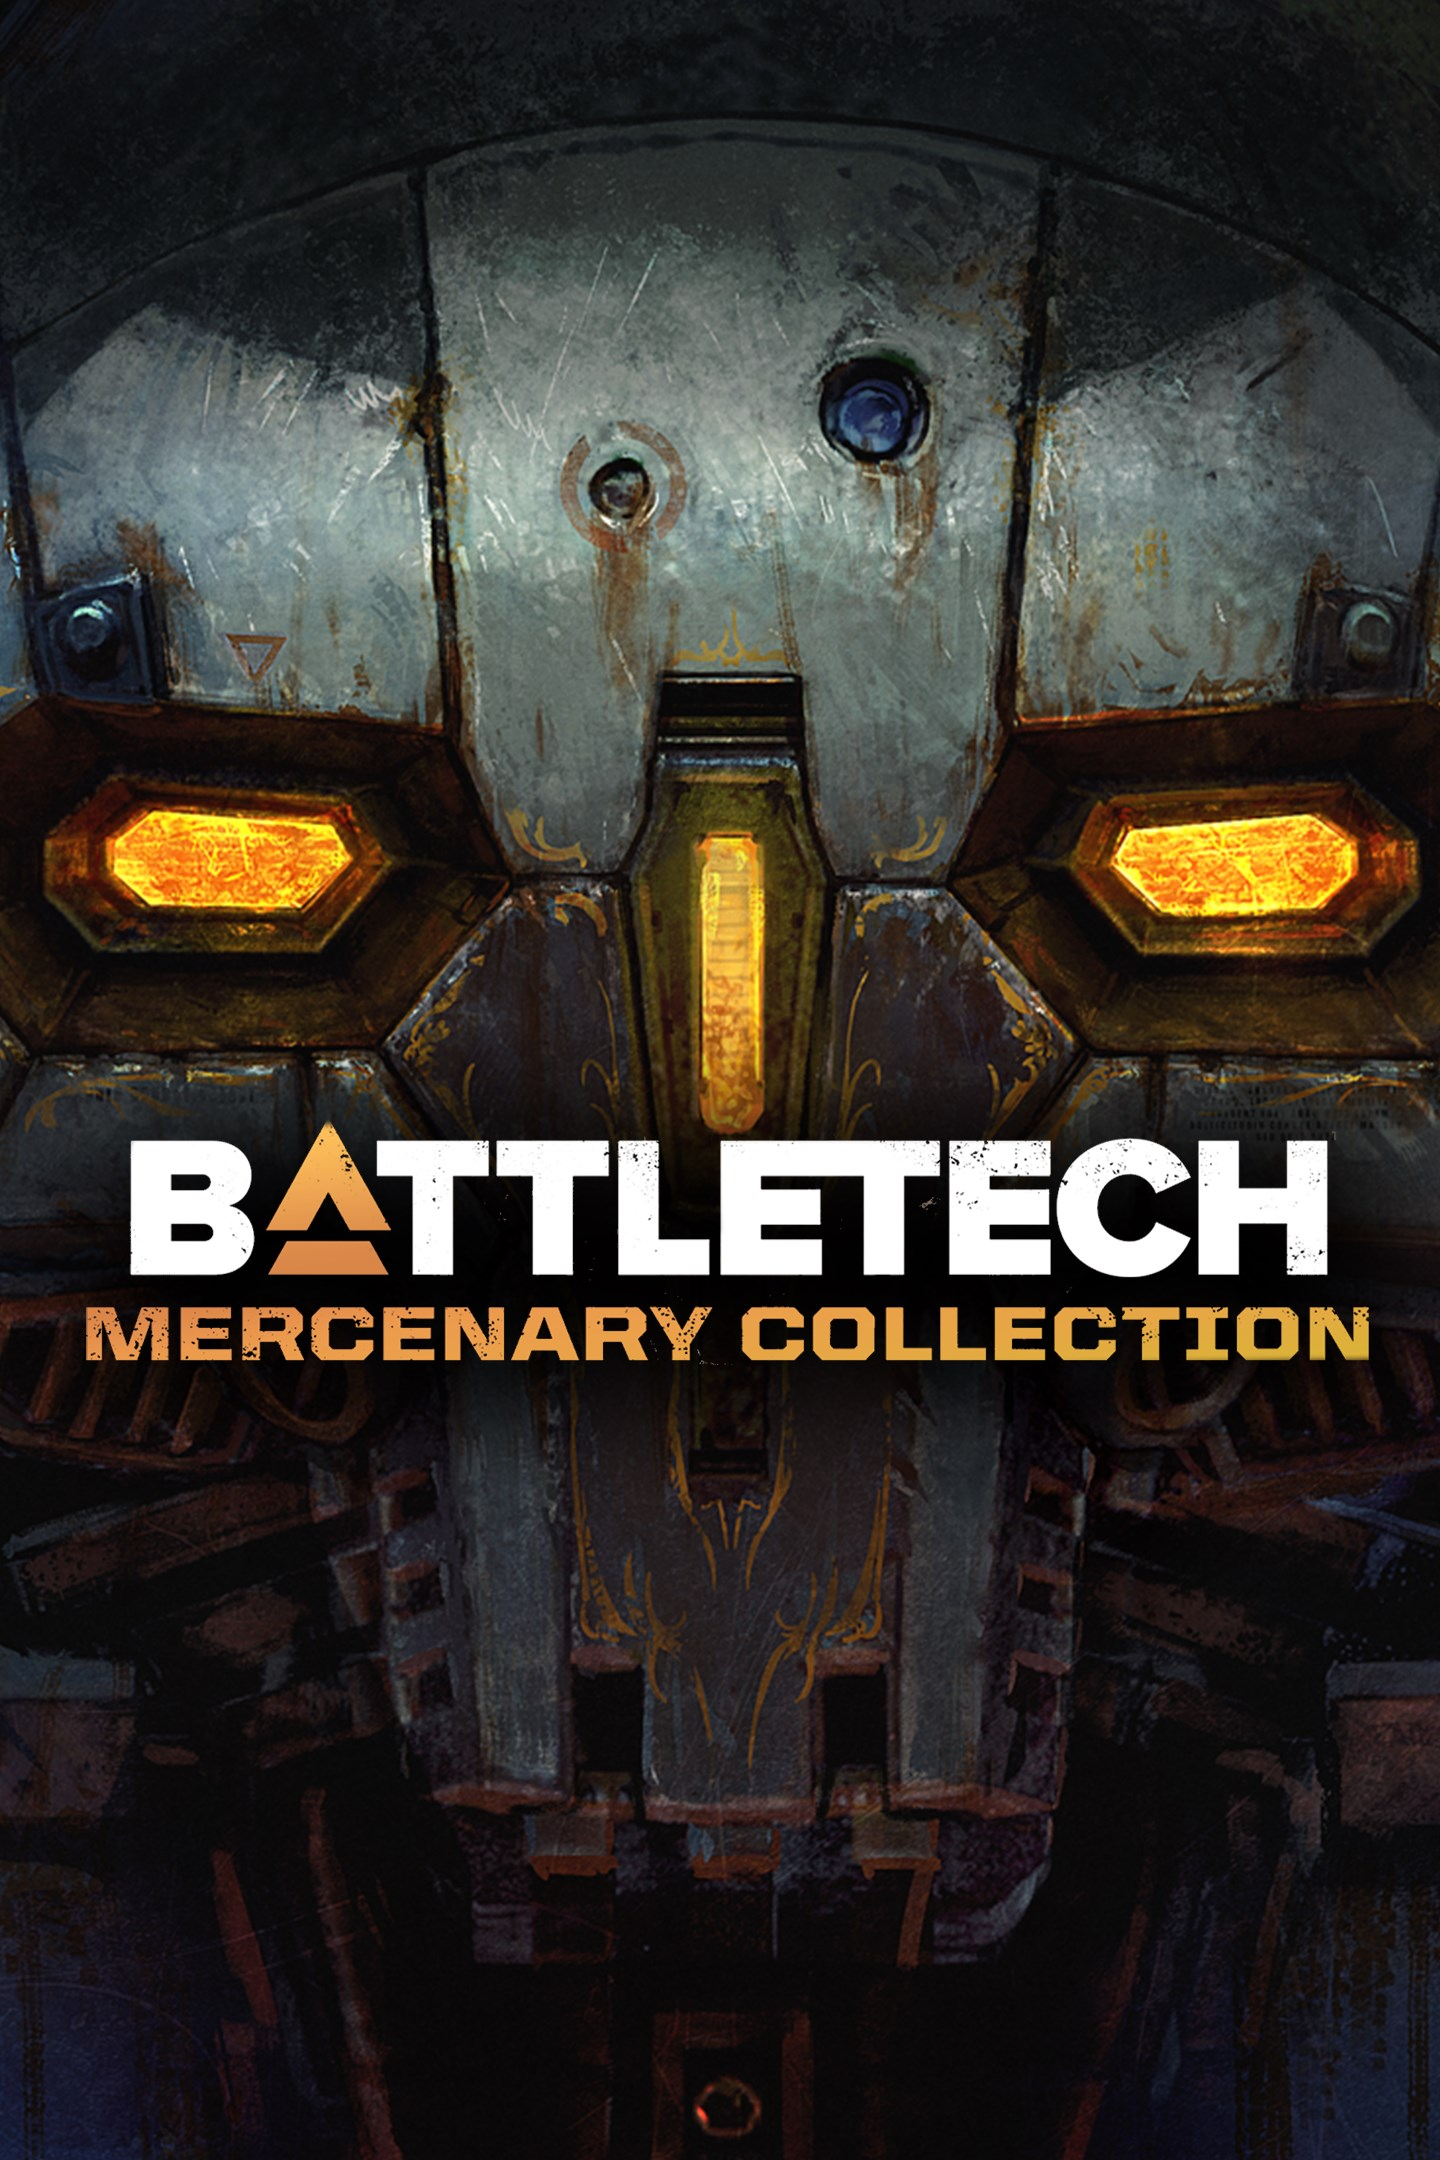 BATTLETECH Mercenary Collection technical specifications for PC